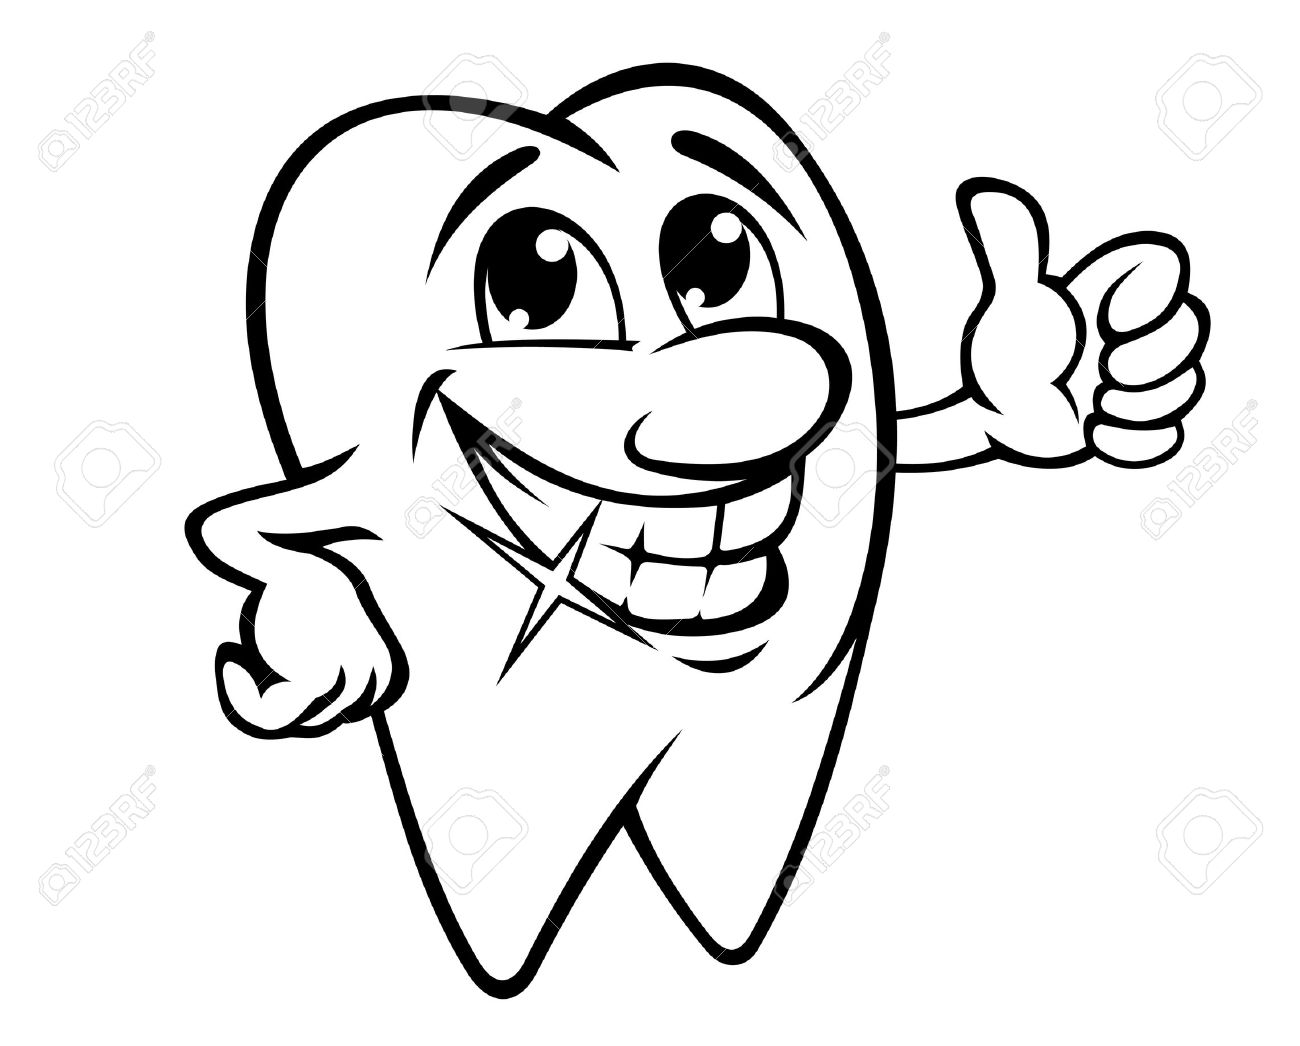 Smiling Tooth Png - Smiling Tooth In Cartoon Style Royalty Free Cliparts, Vectors, And ...